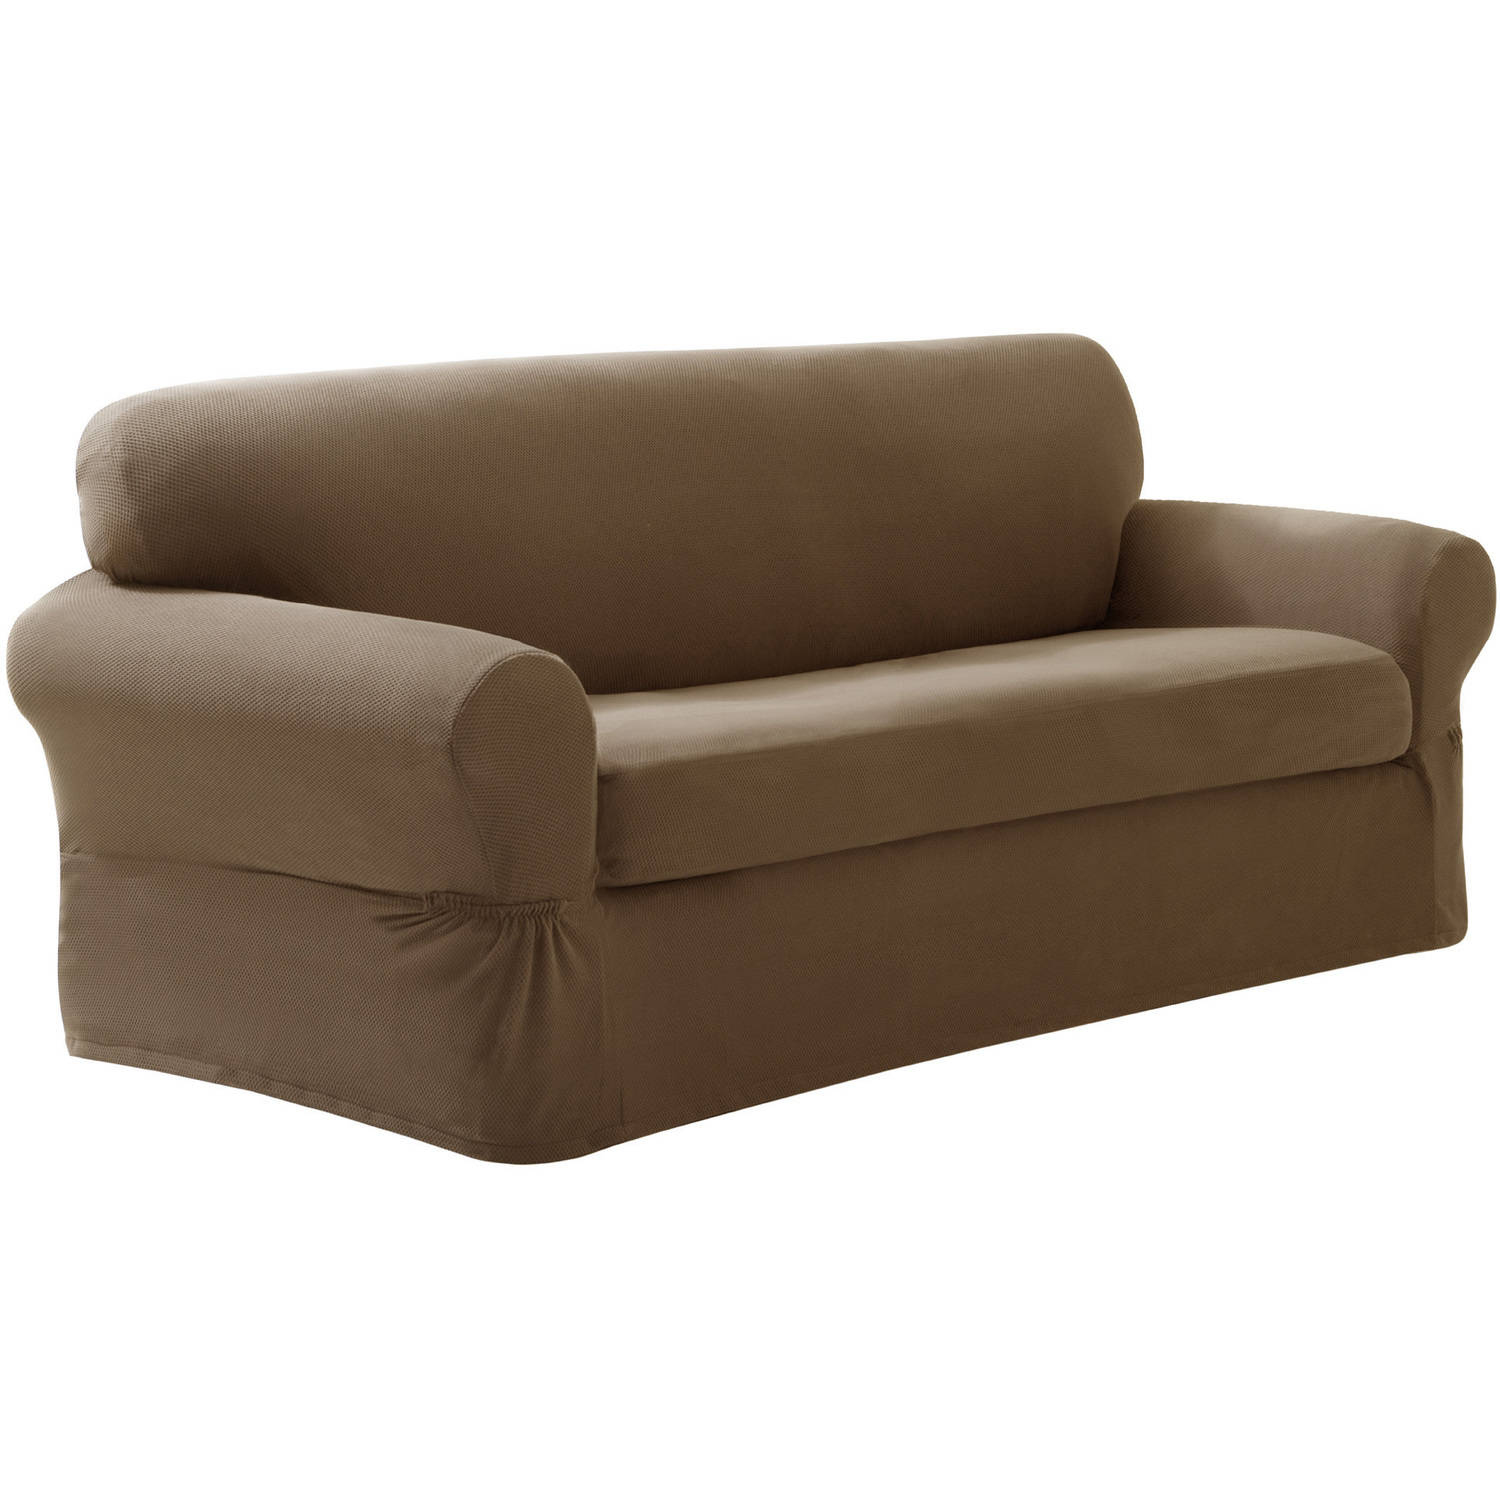 Elegant Maytex Stretch 2-Piece Sofa Slipcover - Walmart.com stretch sofa slipcover